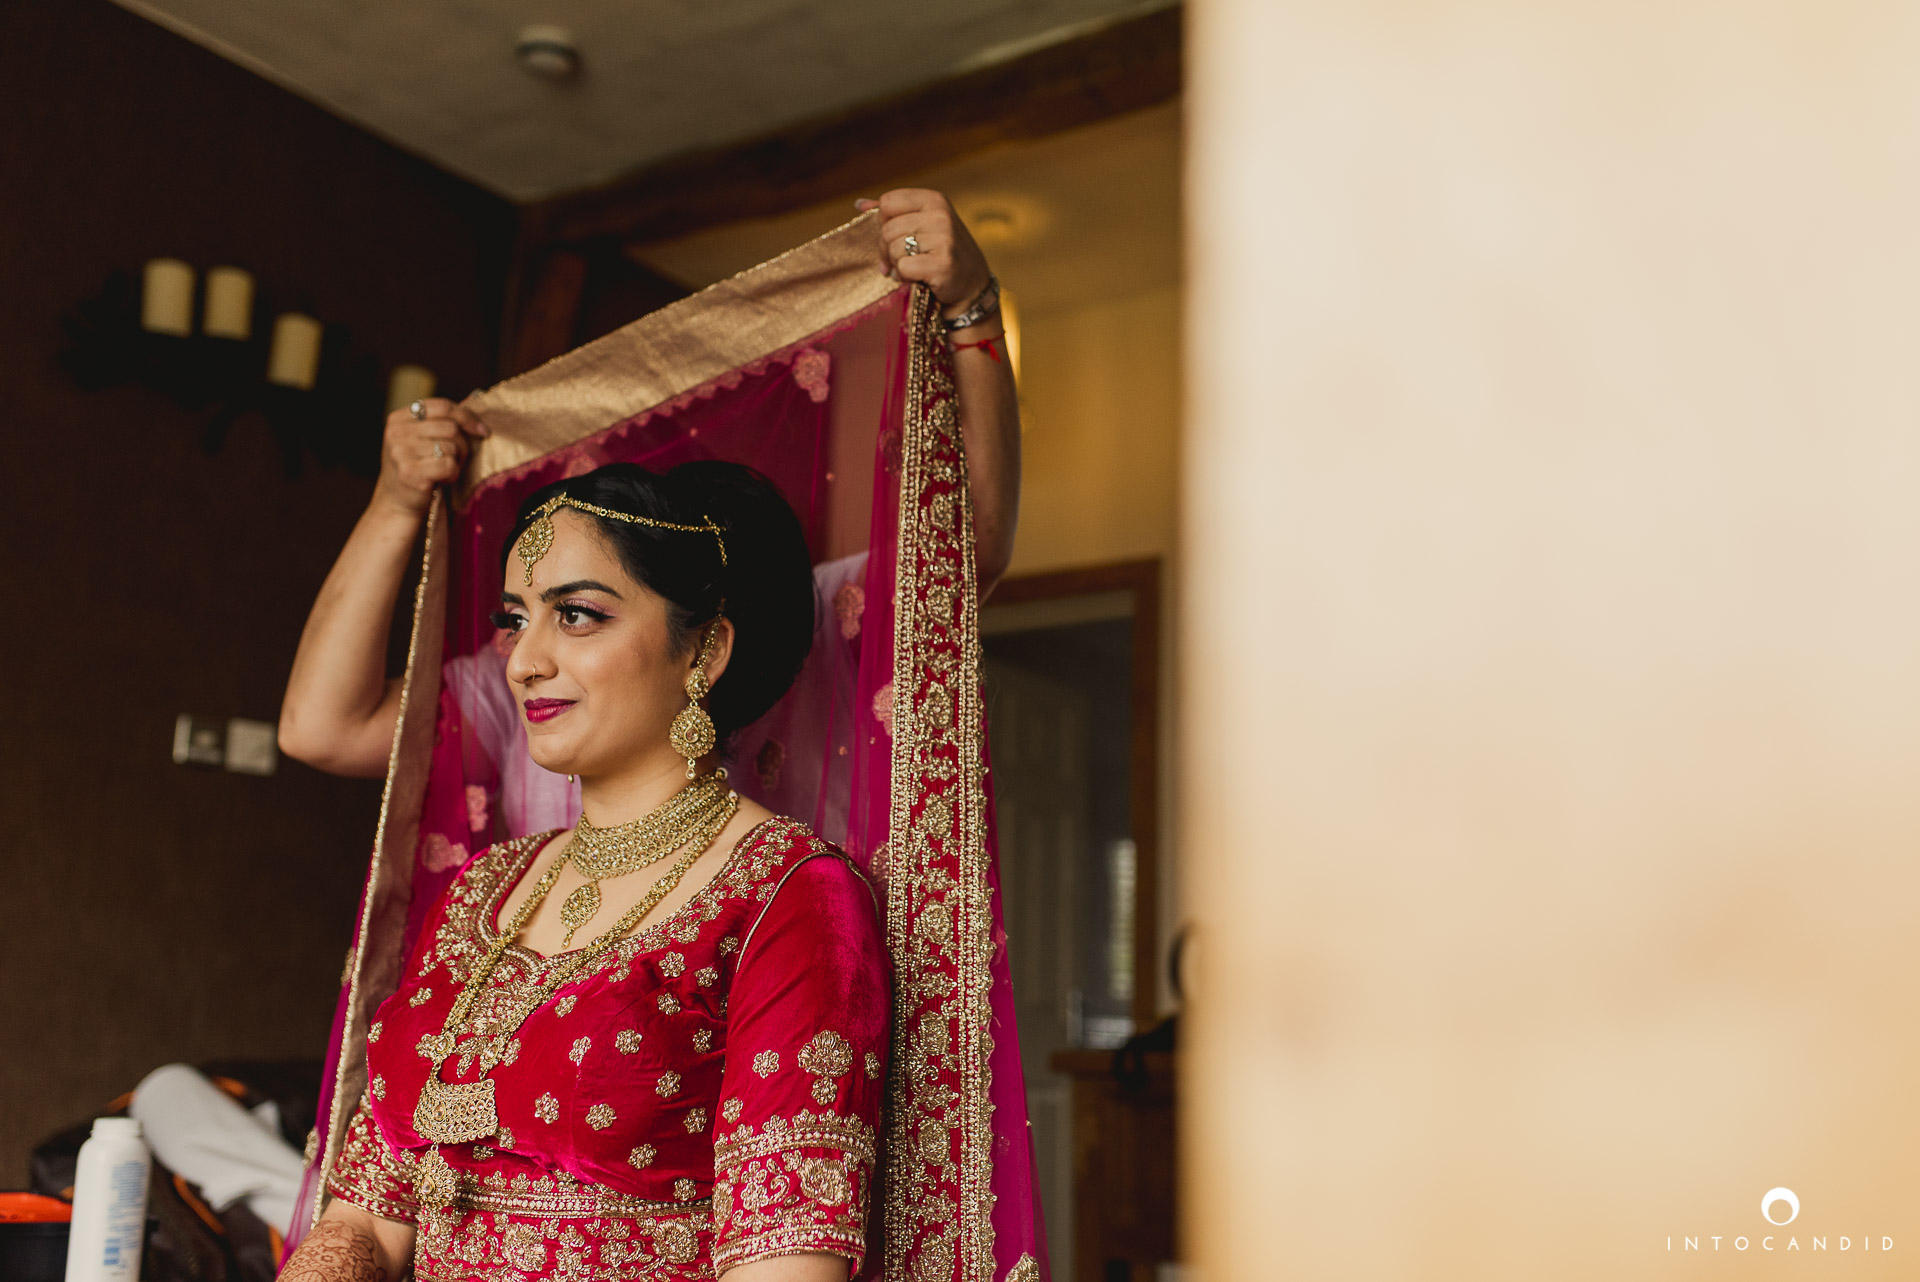 London_Wedding_Photographer_Intocandid_Photography_Ketan & Manasvi_19.5.JPG